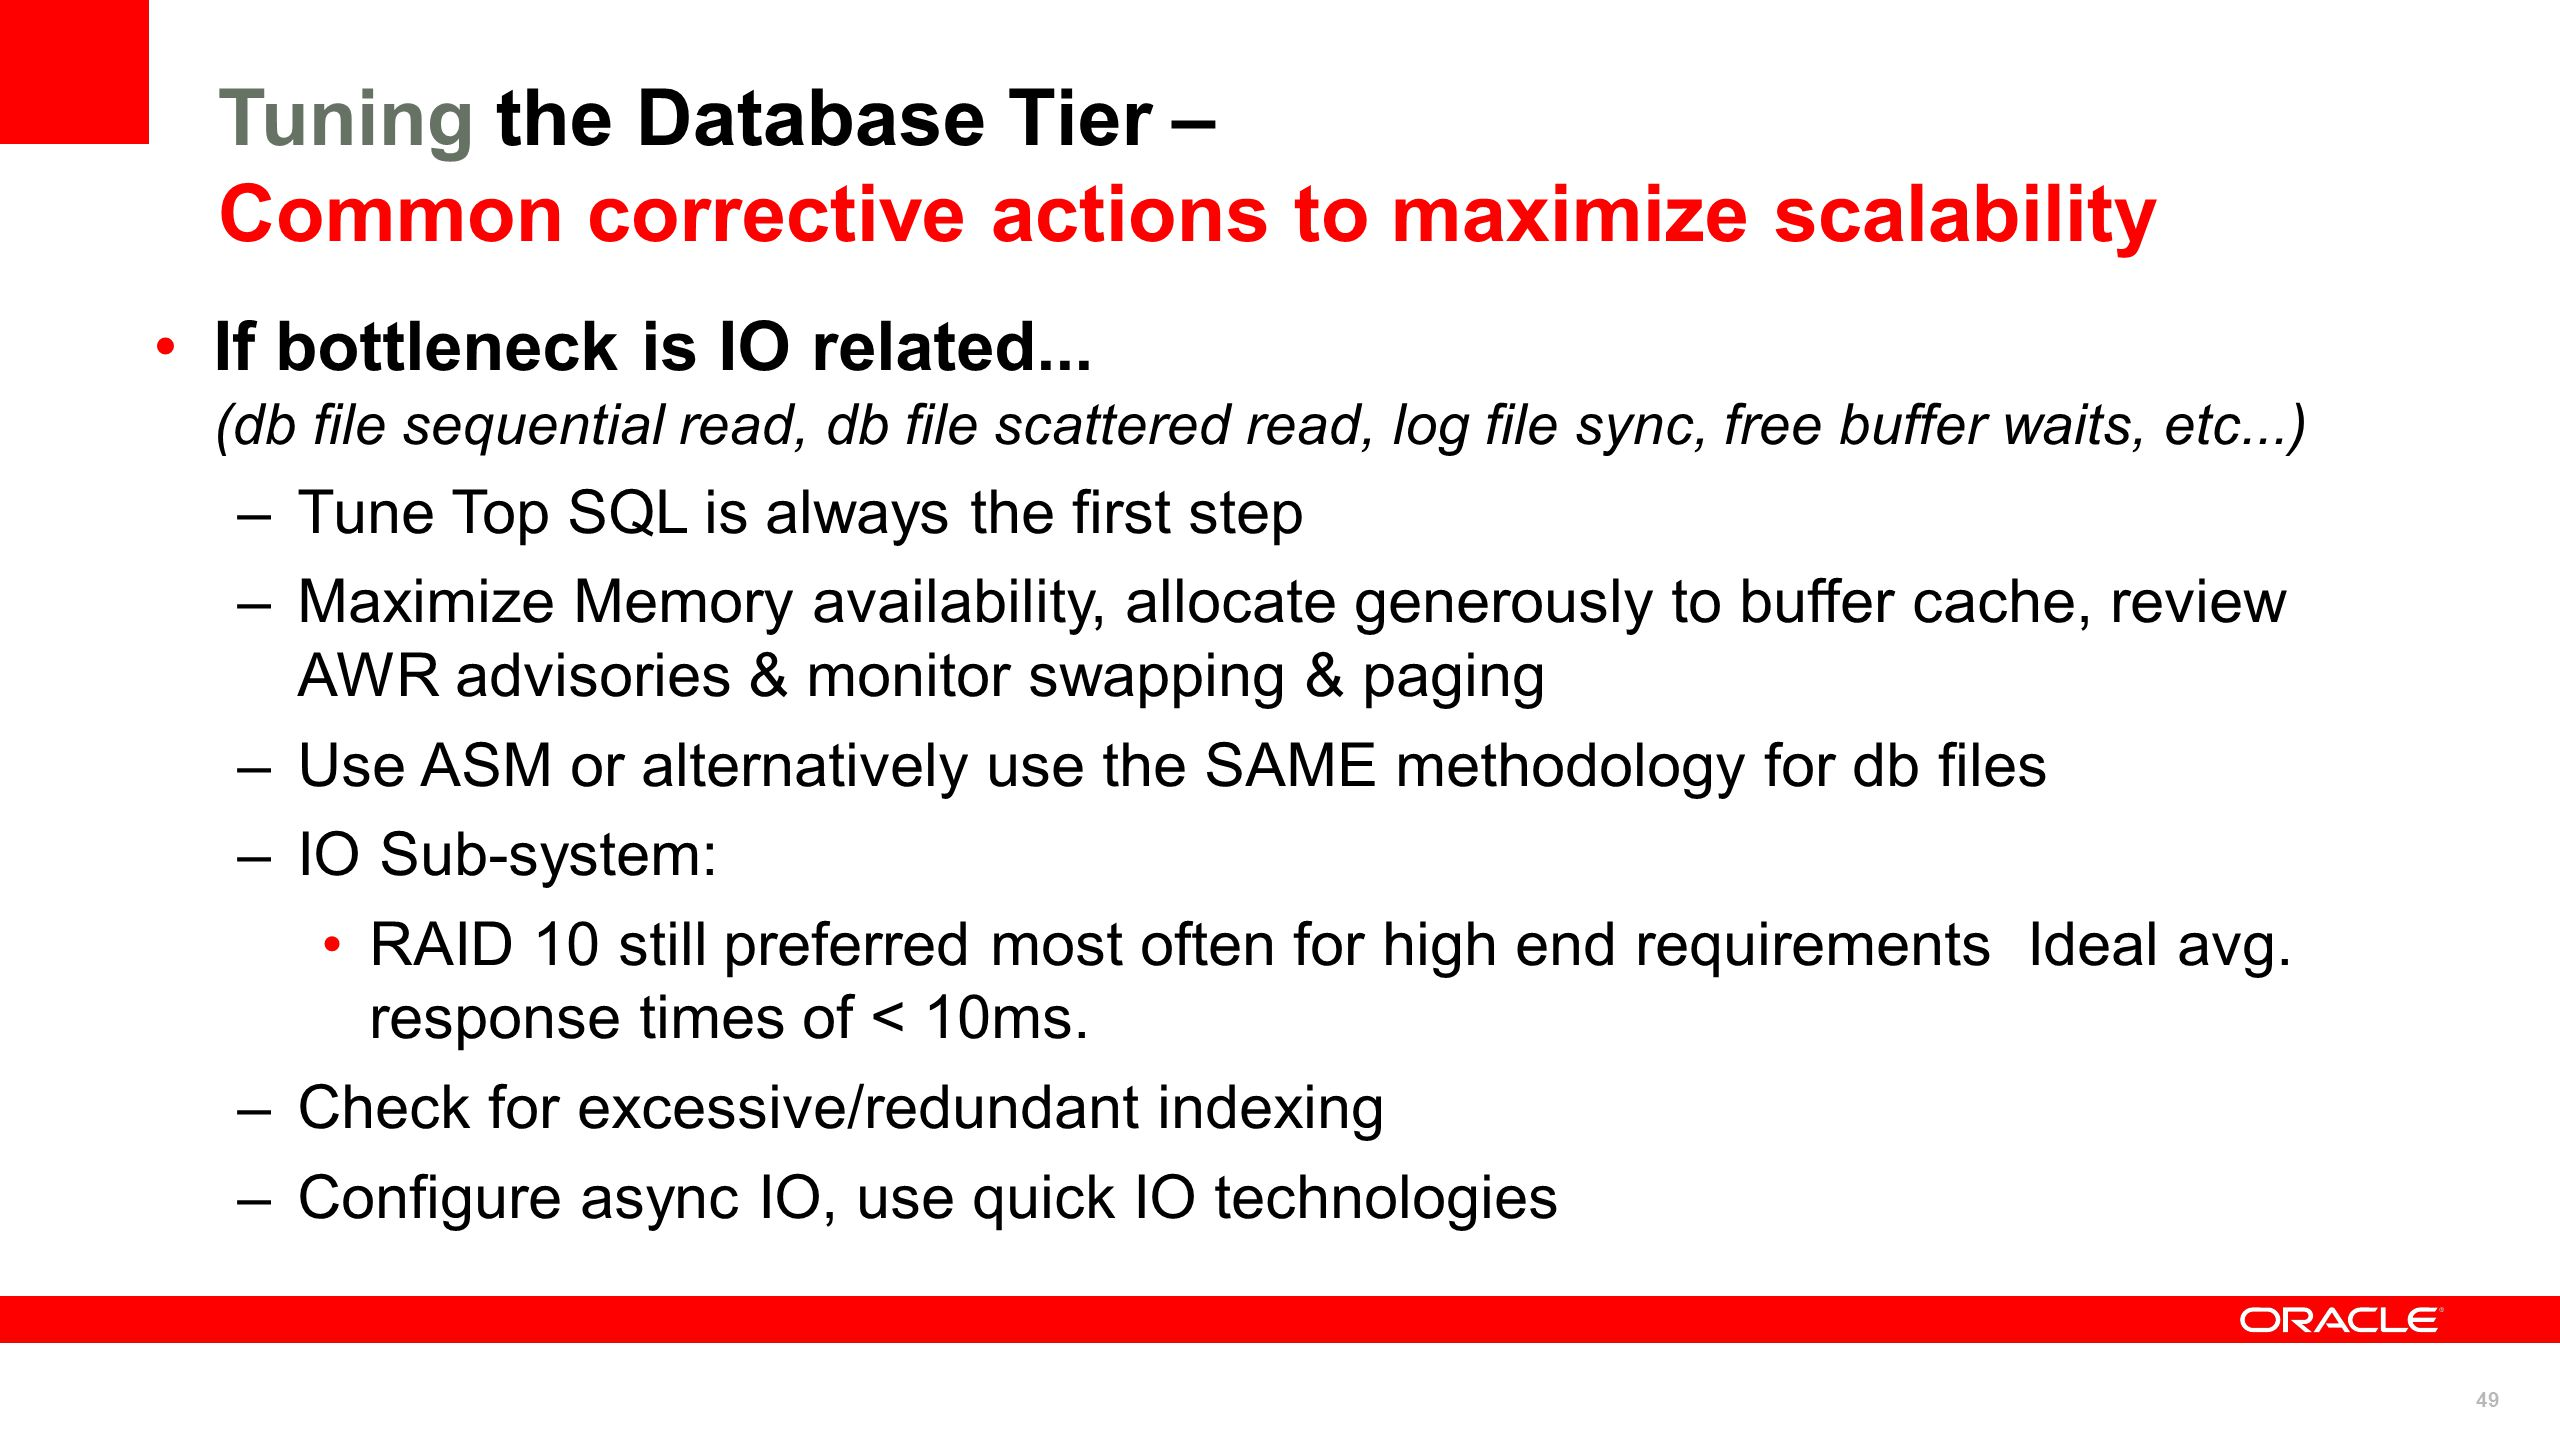 49 If bottleneck is IO related... (db file sequential read, db file scattered read, log file sync, free buffer waits, etc...) –Tune Top SQL is always